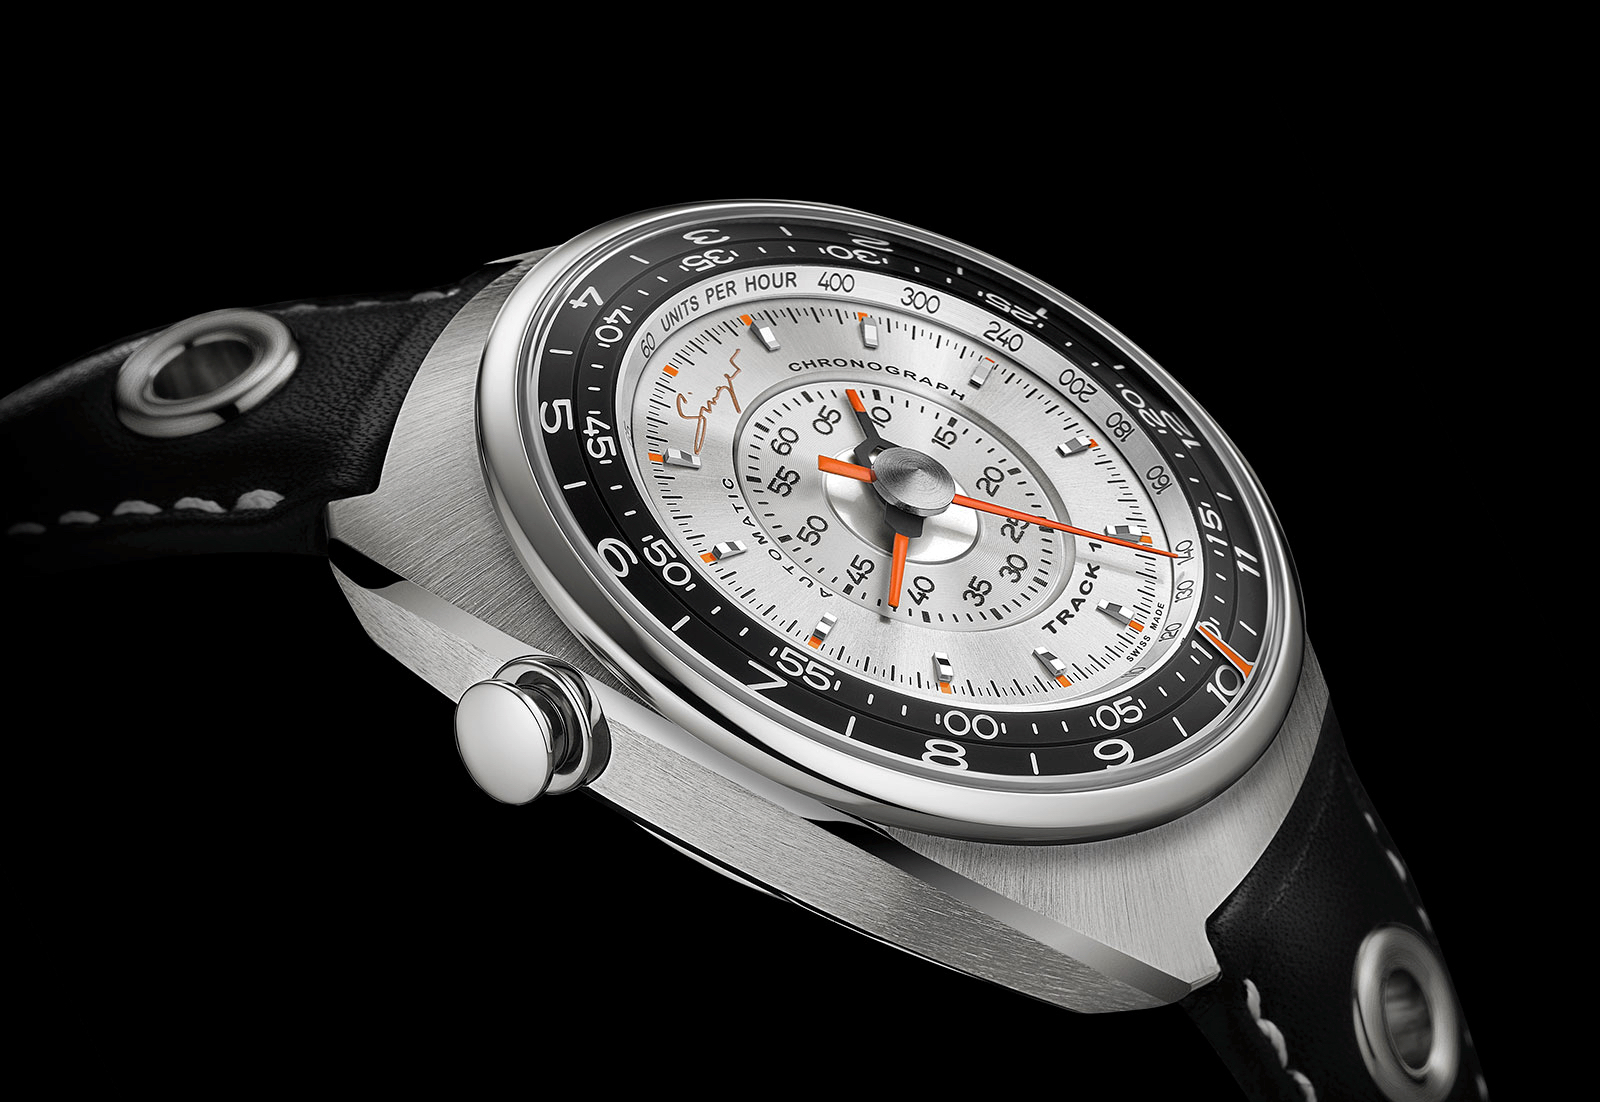 A chronograph designed for the track? - Professional Watches